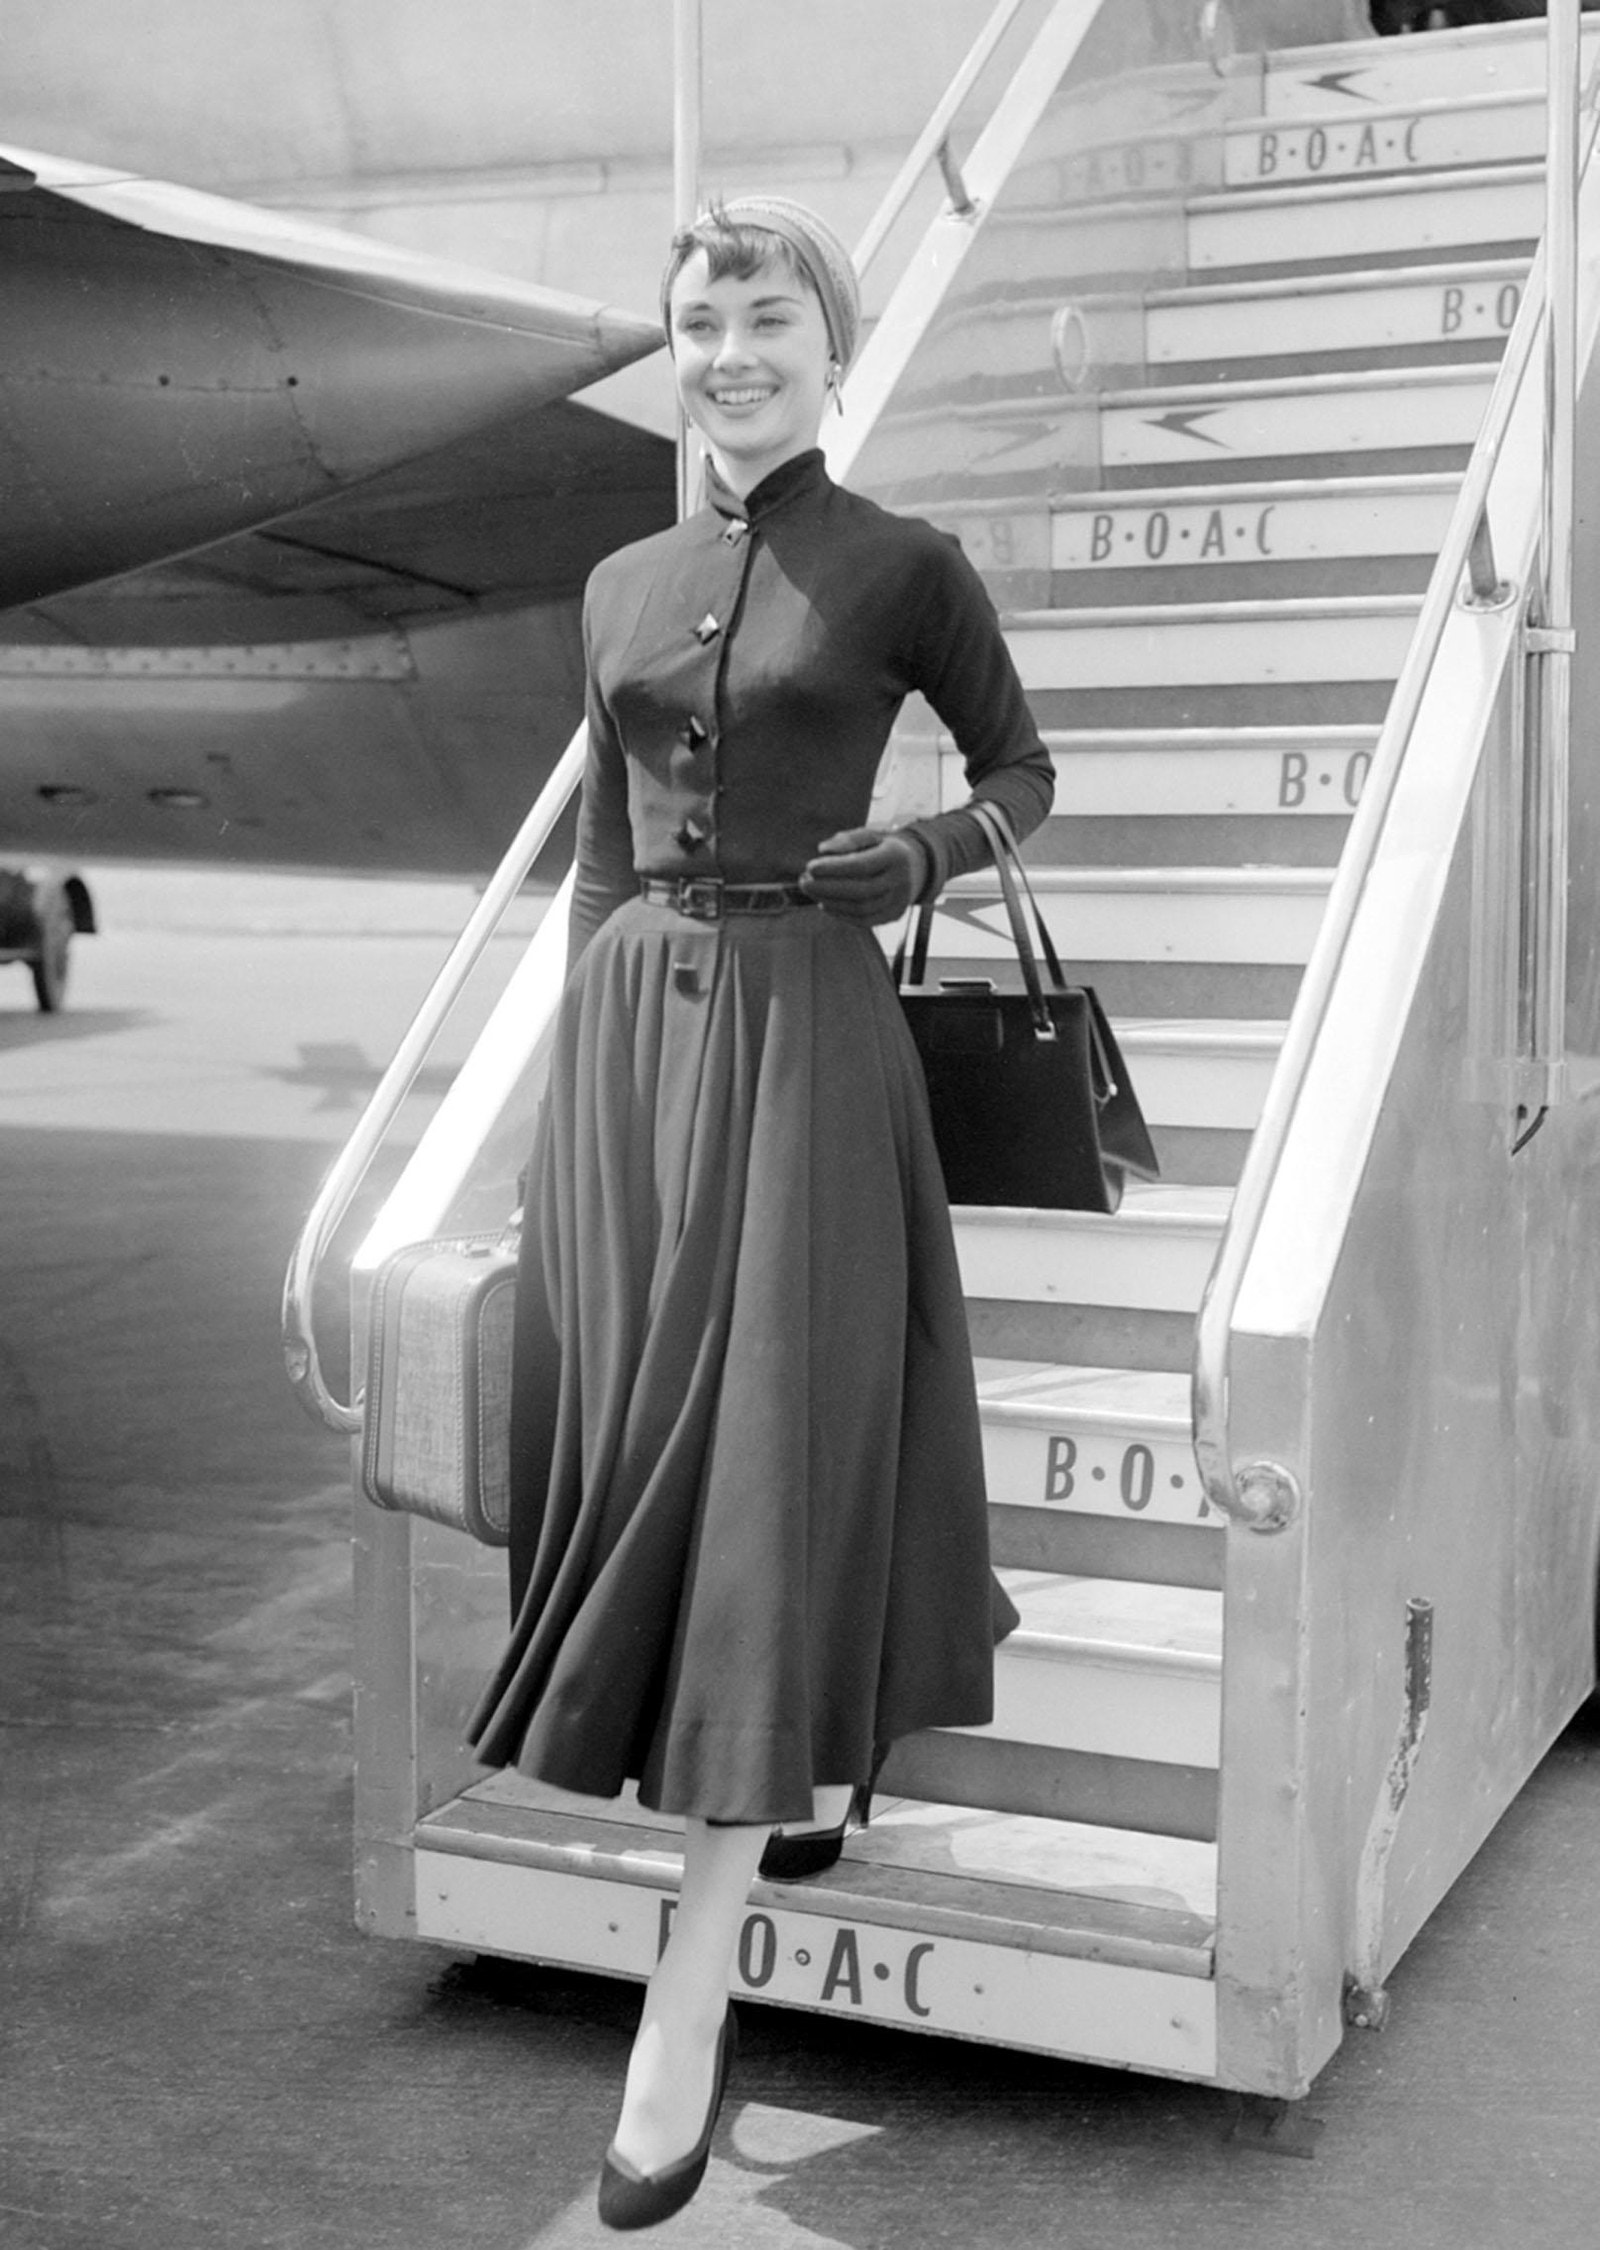 Audrey Hepburn style Audrey Hepburn arrives at the London airport